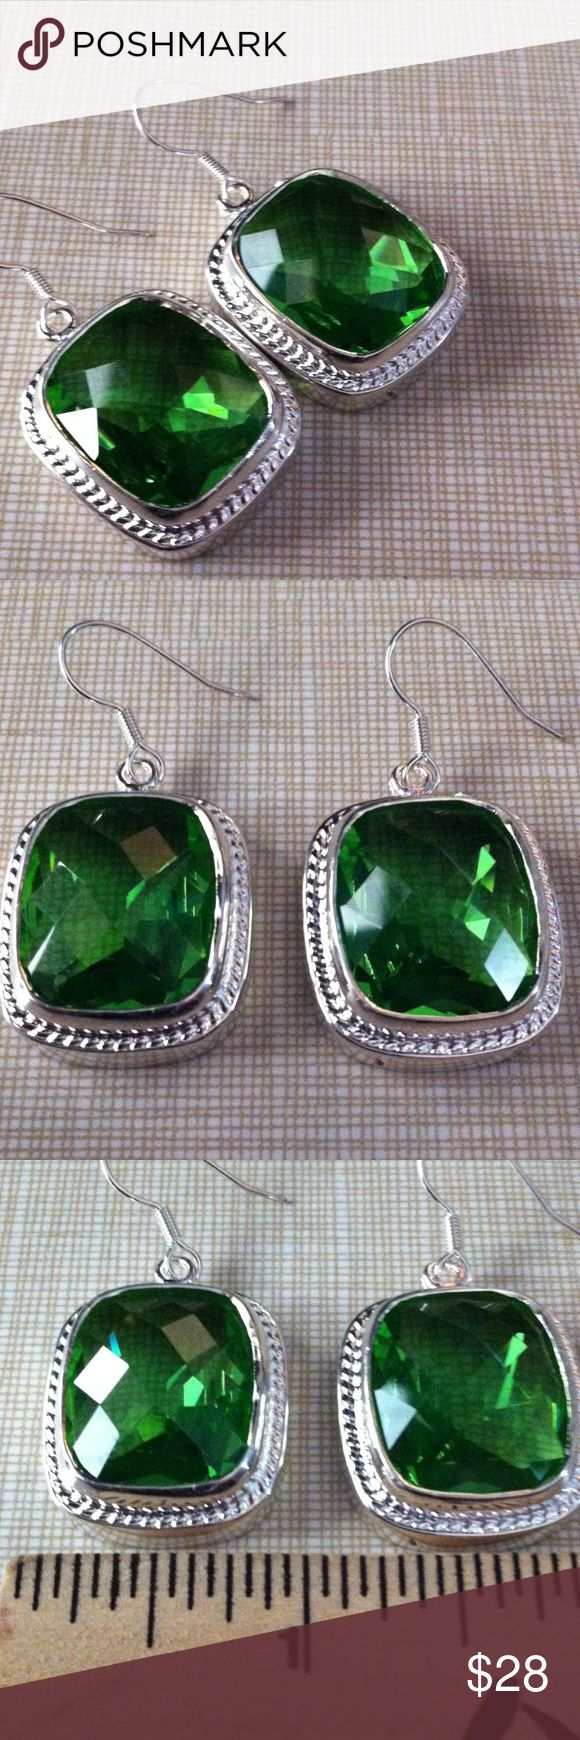 Gorgeous faceted green topaz earrings 20x17MM Beautiful piece of jewelry rhodium over silver to prevent tarnish handcrafted beautiful design faceted green topaz NWOT also stamped 925 approximately 1'3/4 long and over 1/2 ' wide Jewelry Earrings